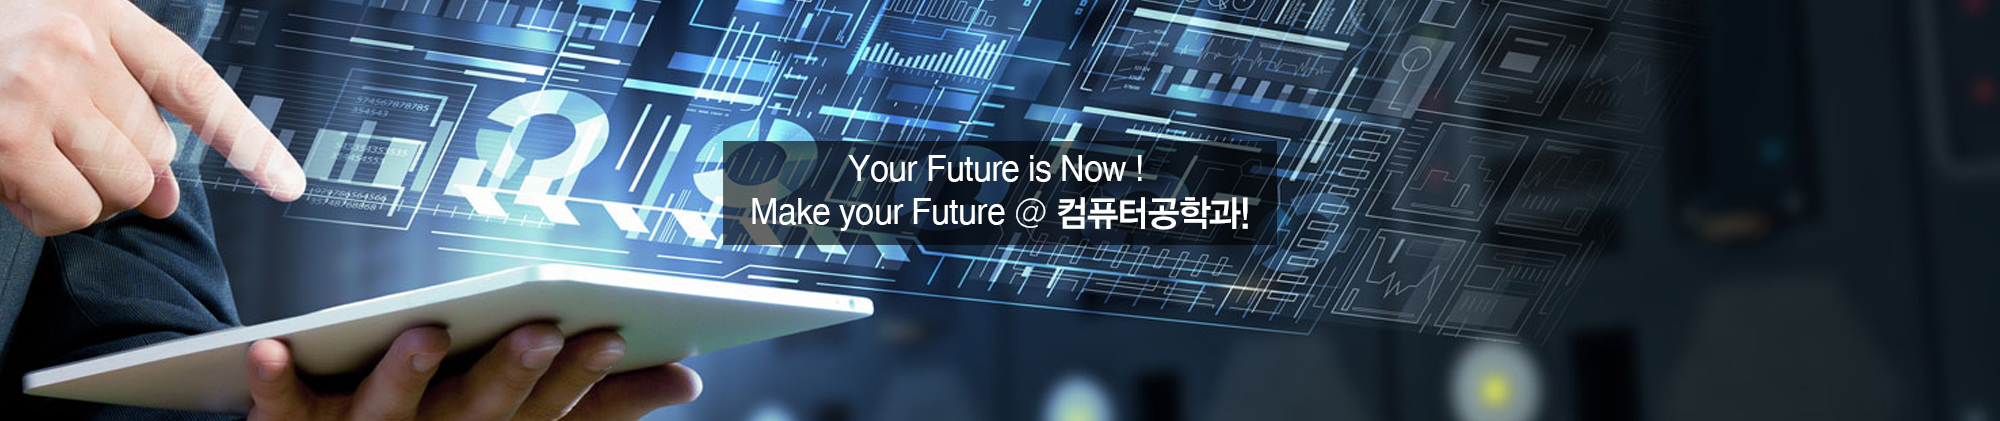 Your Future is Now! Make your Future @ 컴퓨터공학과